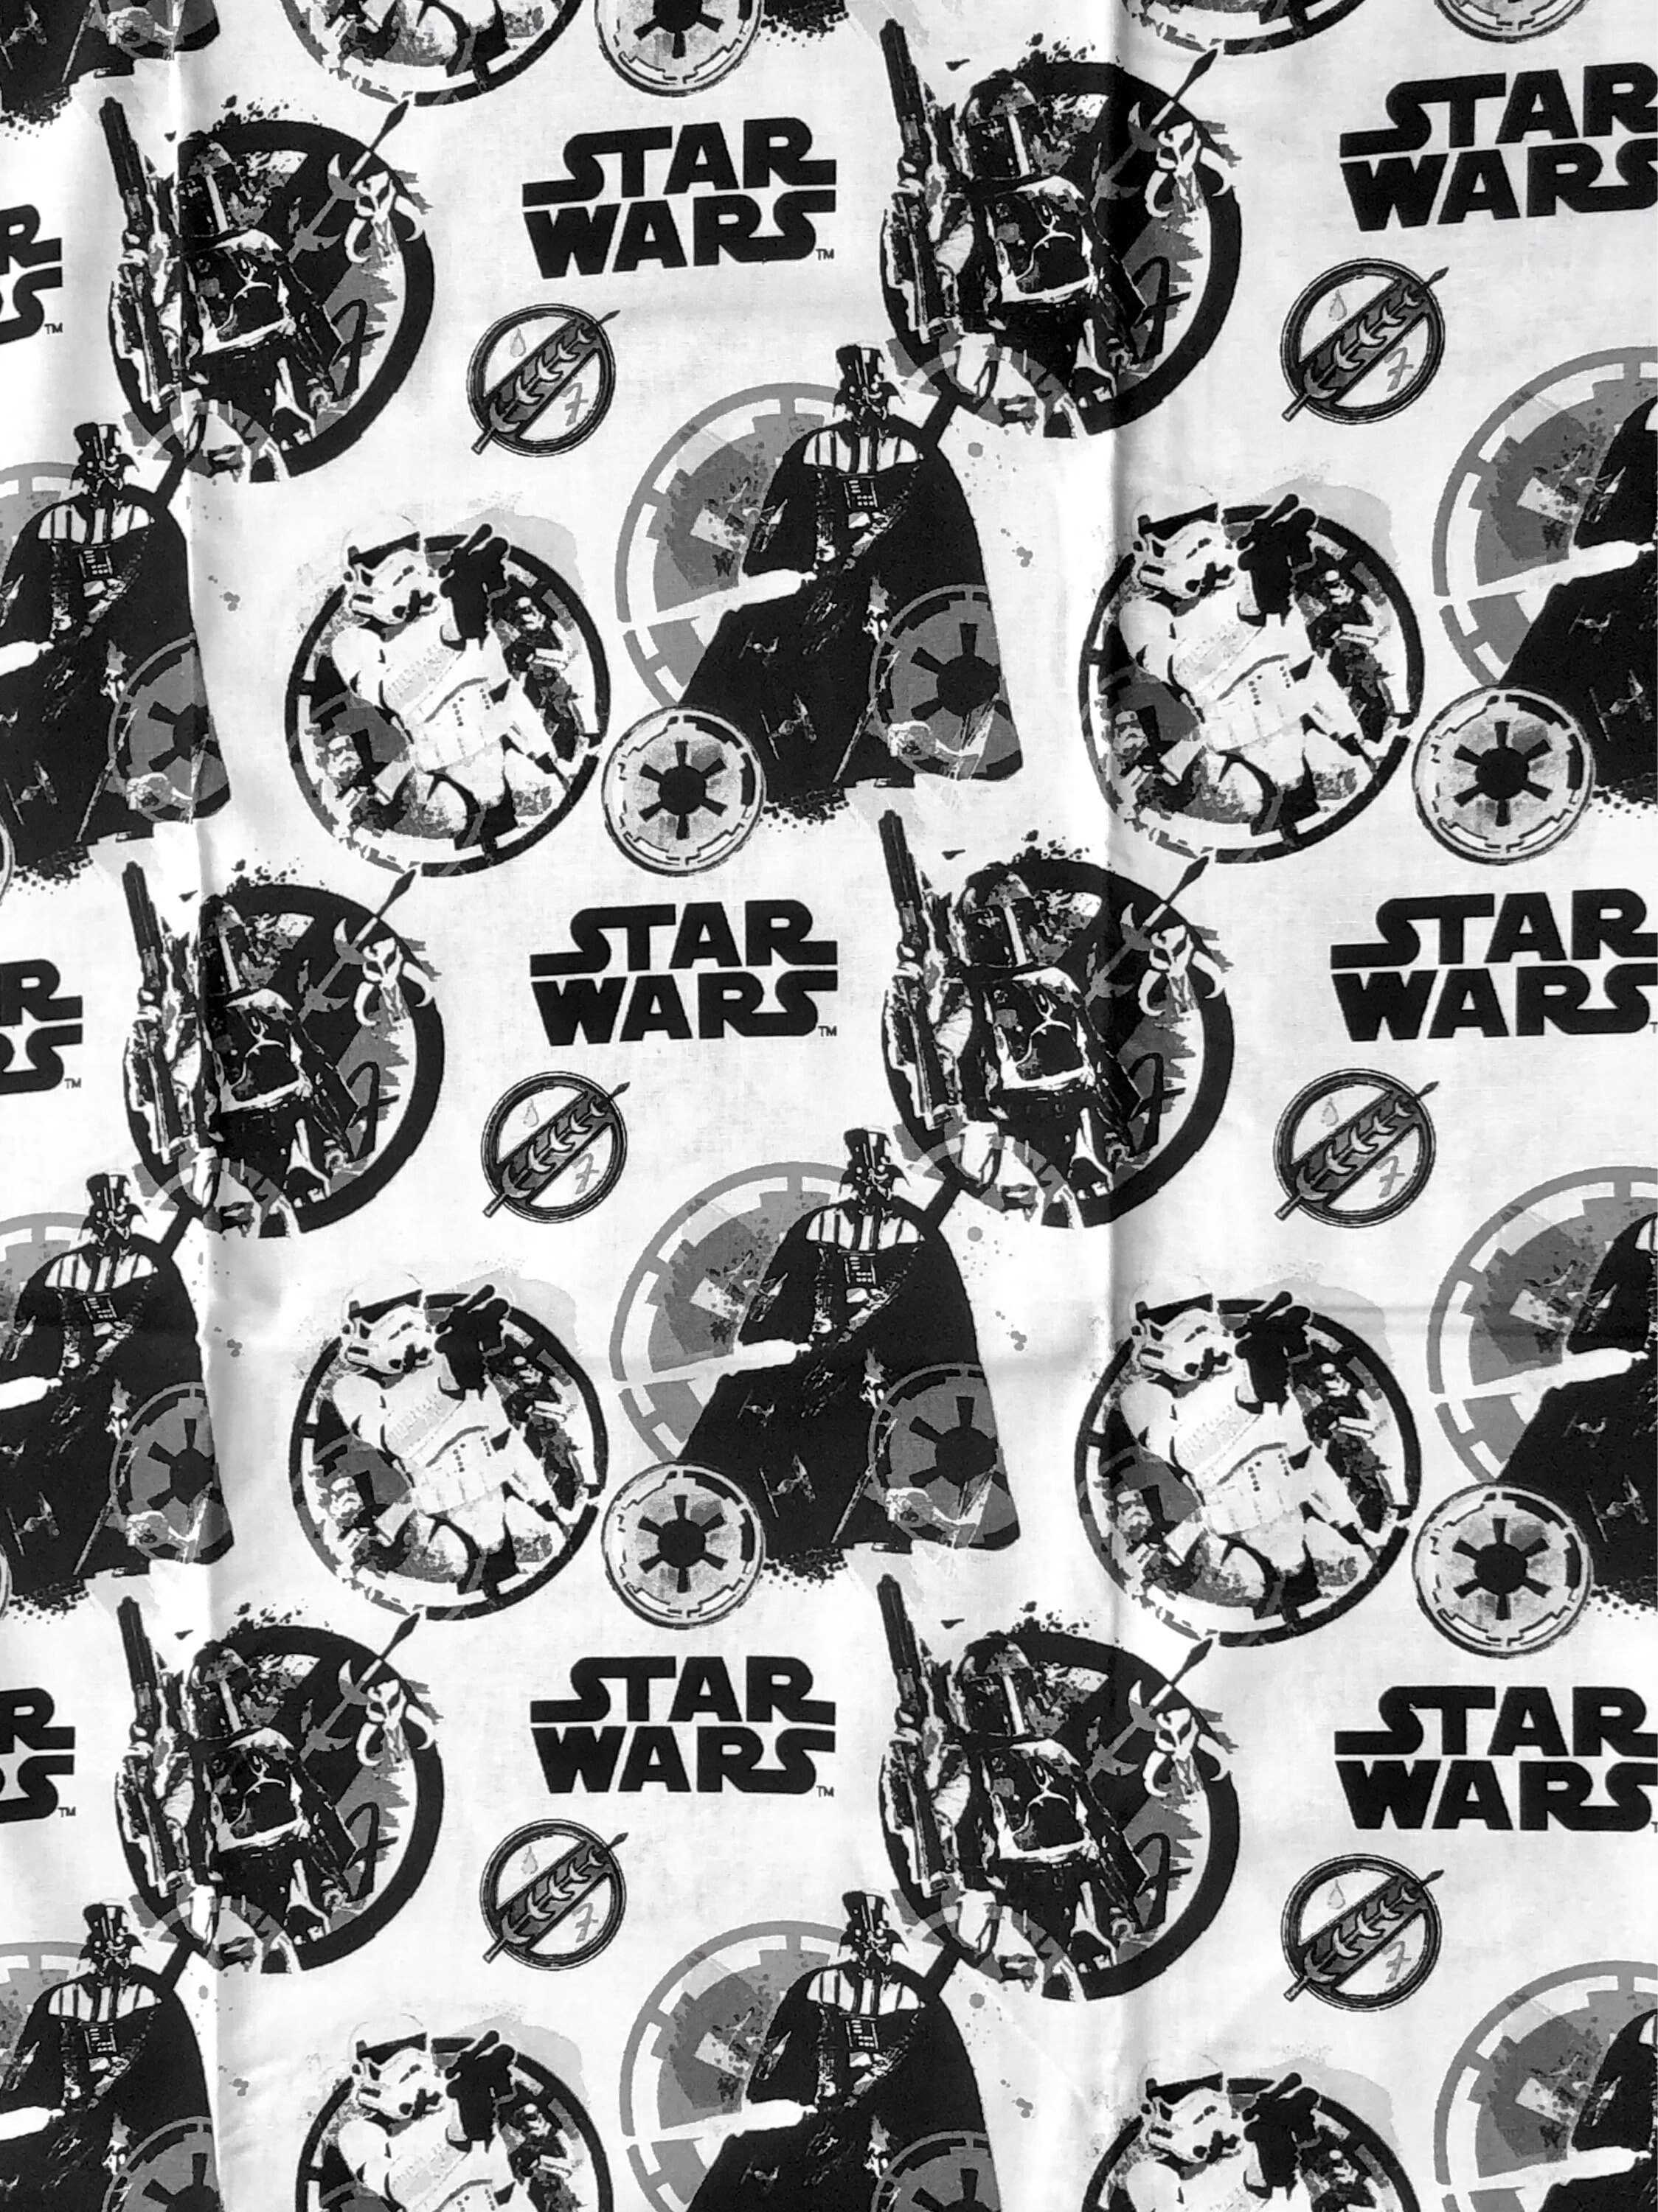 Enchanting Storm Trooper Star Wars Fabric Nz Star Wars Fabric Star Wars Fabric Featuring Darth Boba Quilting baby Star Wars Fabric